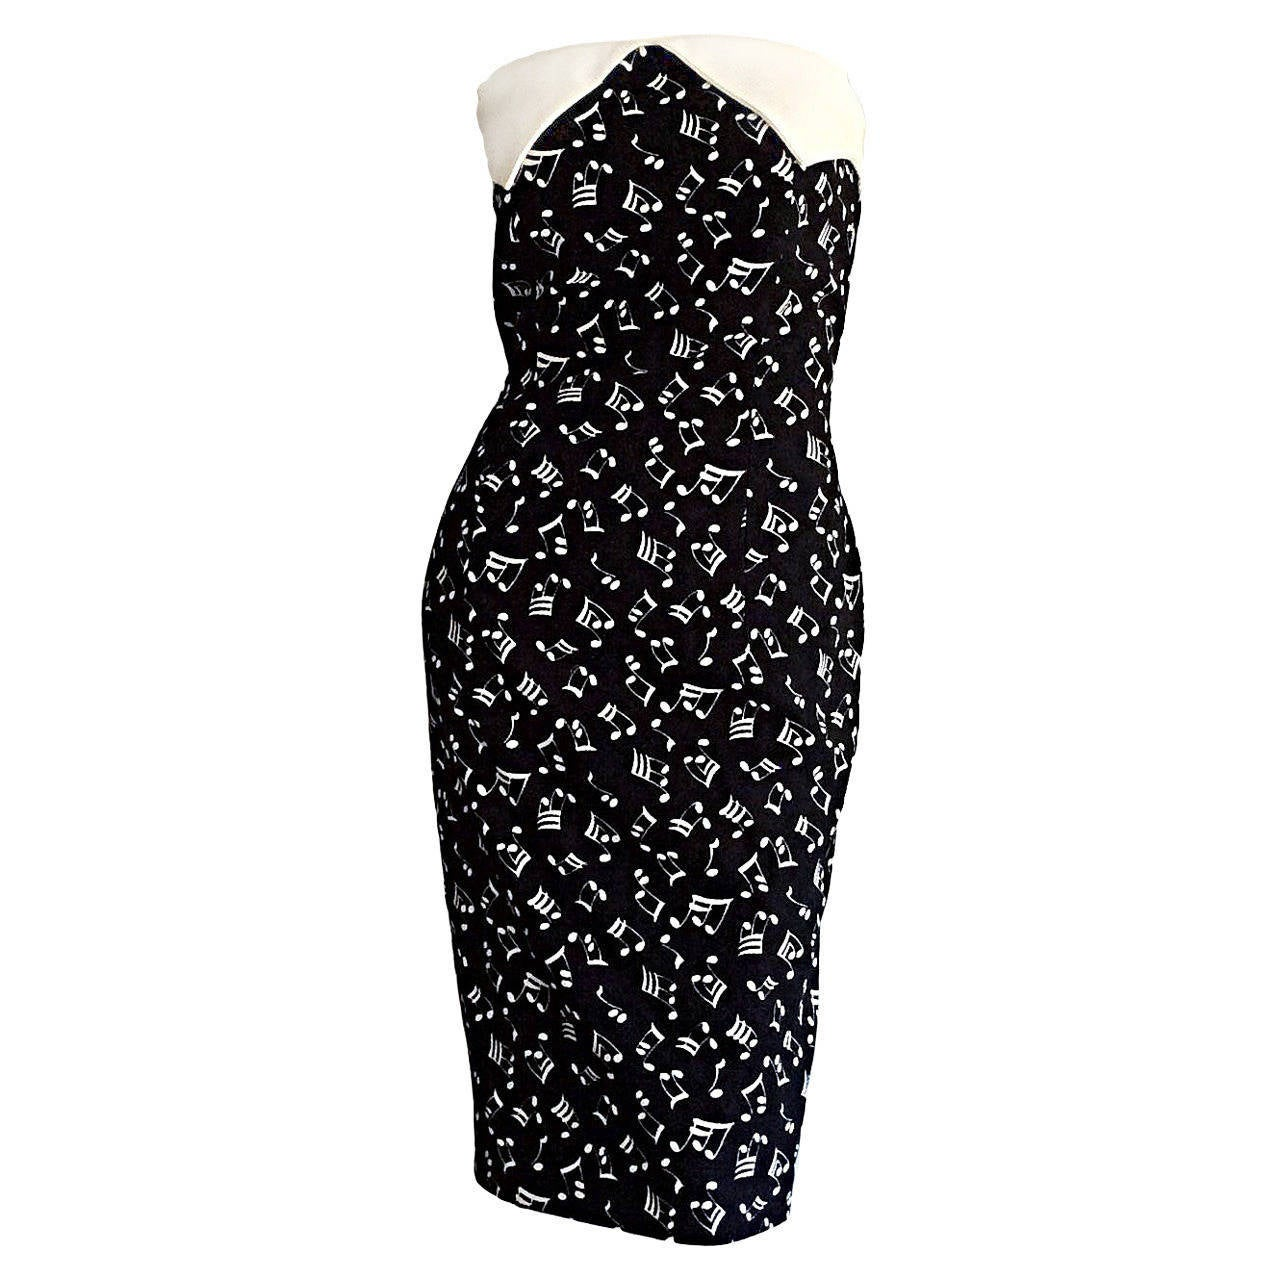 Iconic Vintage Patrick Kelly ' Music Notes ' Strapless Cotton Dress For Sale